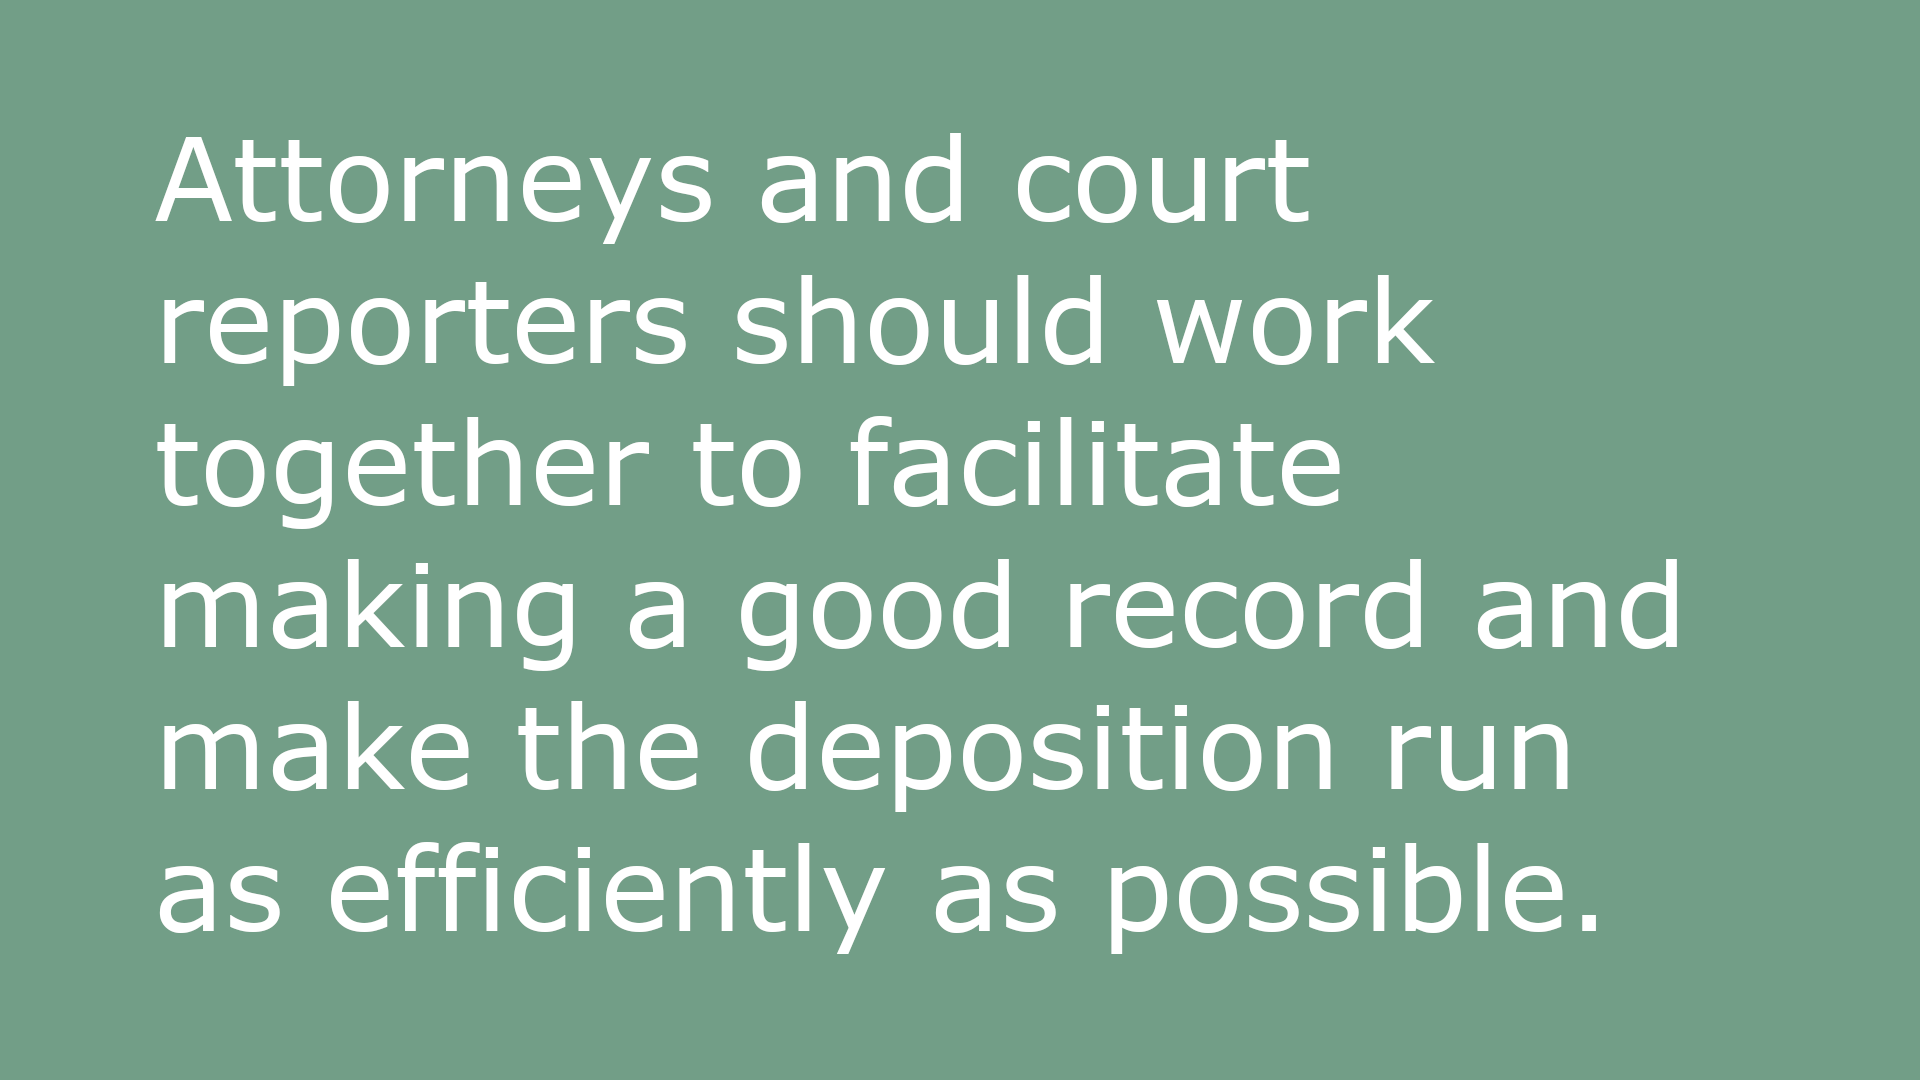 Text-based image that reads: Attorneys and court reporters should work together to facilitate making a good record and make the deposition run as efficiently as possible.